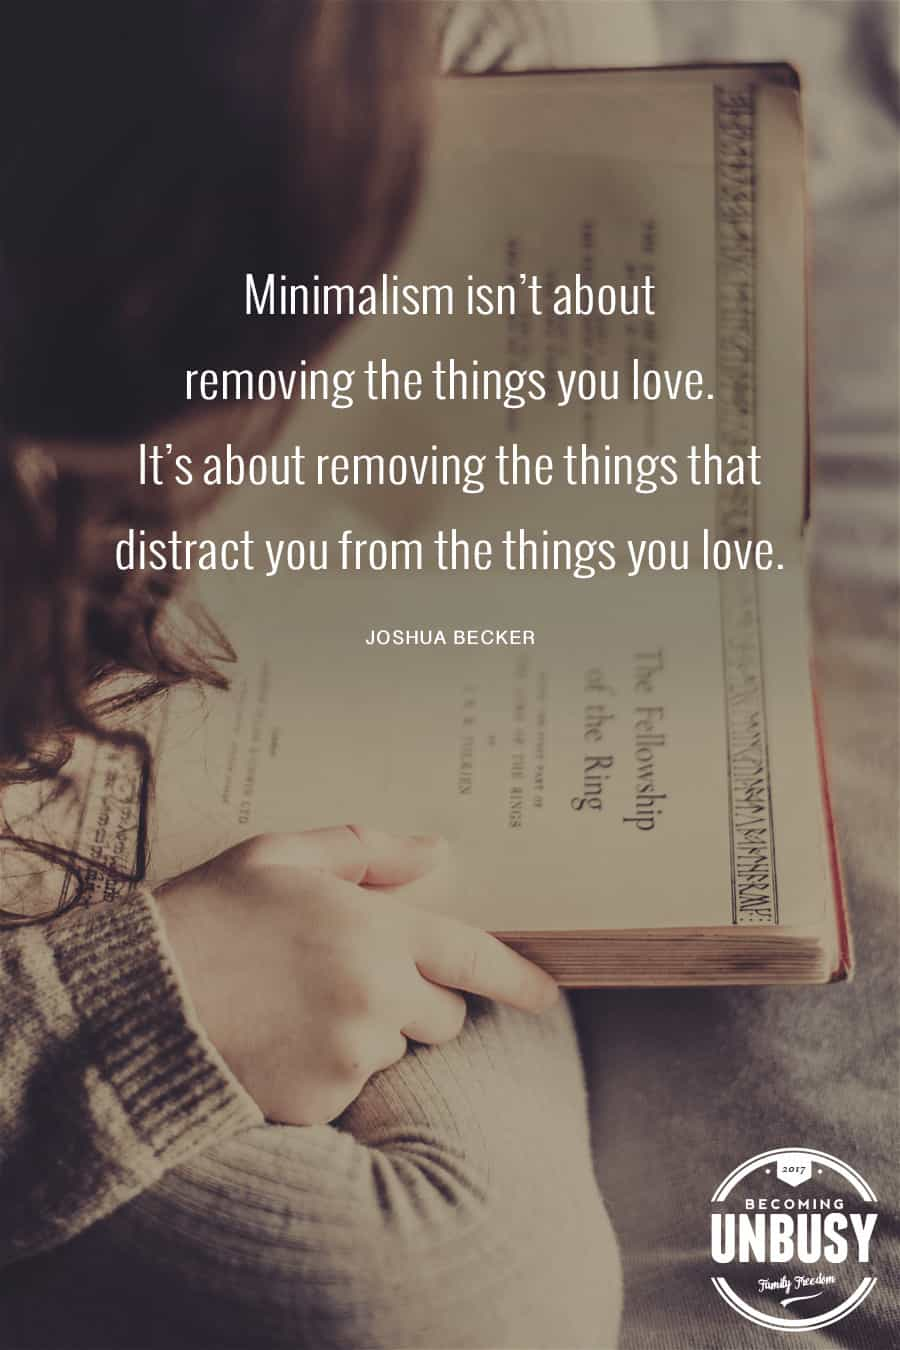 Minimalism isn't about removing things you love. It's about removing the things that distract you from the things you love. —Joshua Becker #quote #minimalism #intentionalliving #becomingunbusy #joshuabecker *Loving this collection of quotes